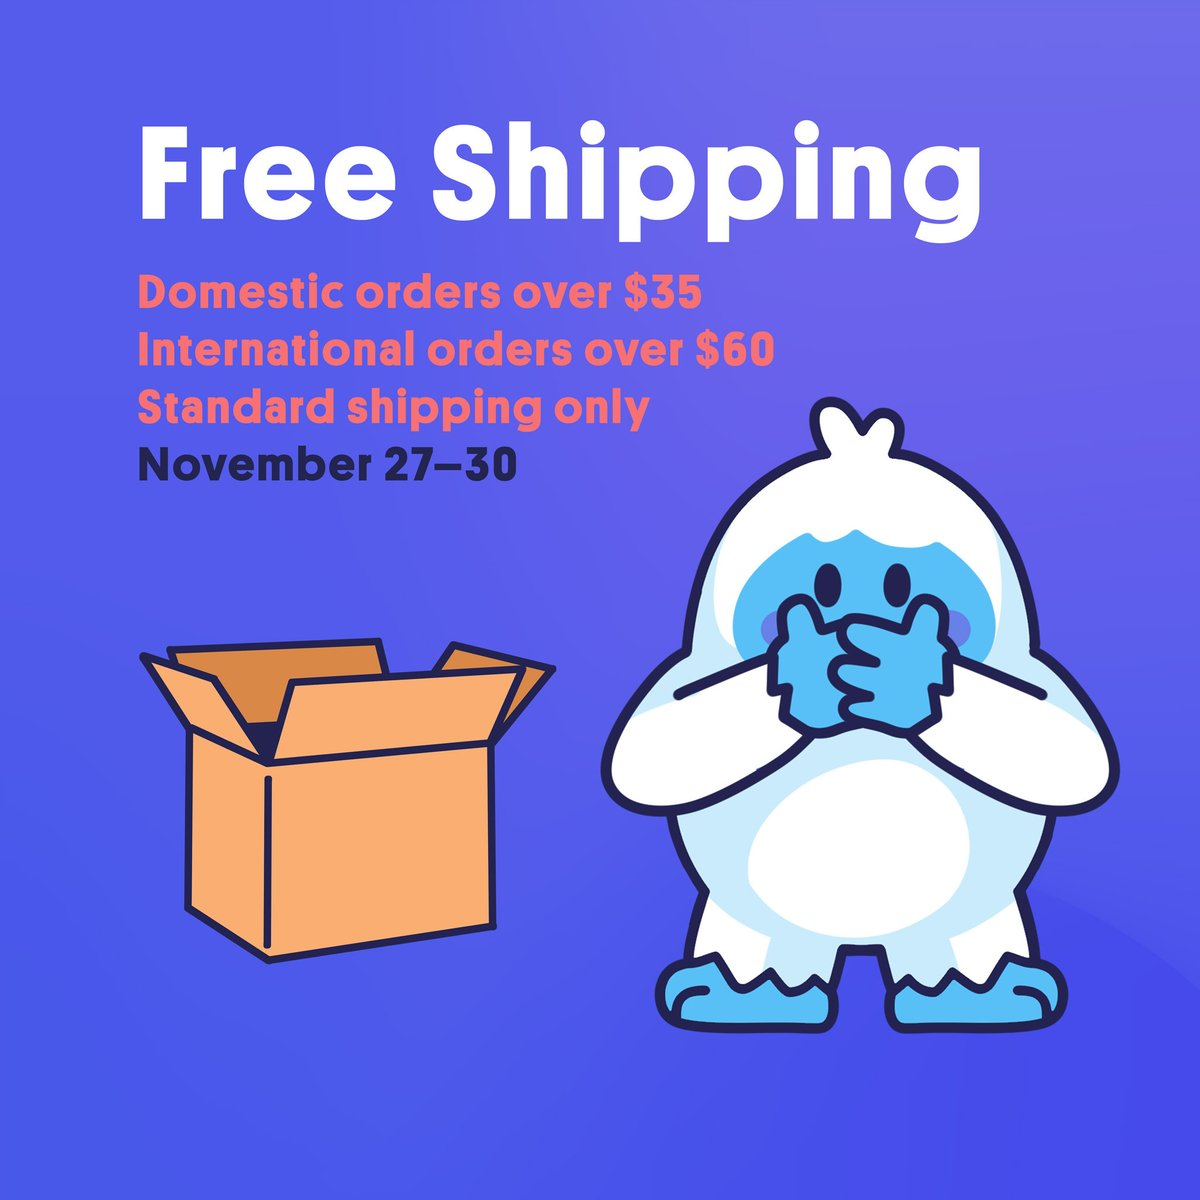 The Yetee On Twitter In Case You Re Only Just Waking Up From Your Food Coma We Ve Got Free Shipping Happening All Weekend Long On Qualifying Orders Save Big With Sales And Get theyetee.com coupon codes, discounts and promos including 35% off and 10% off. twitter